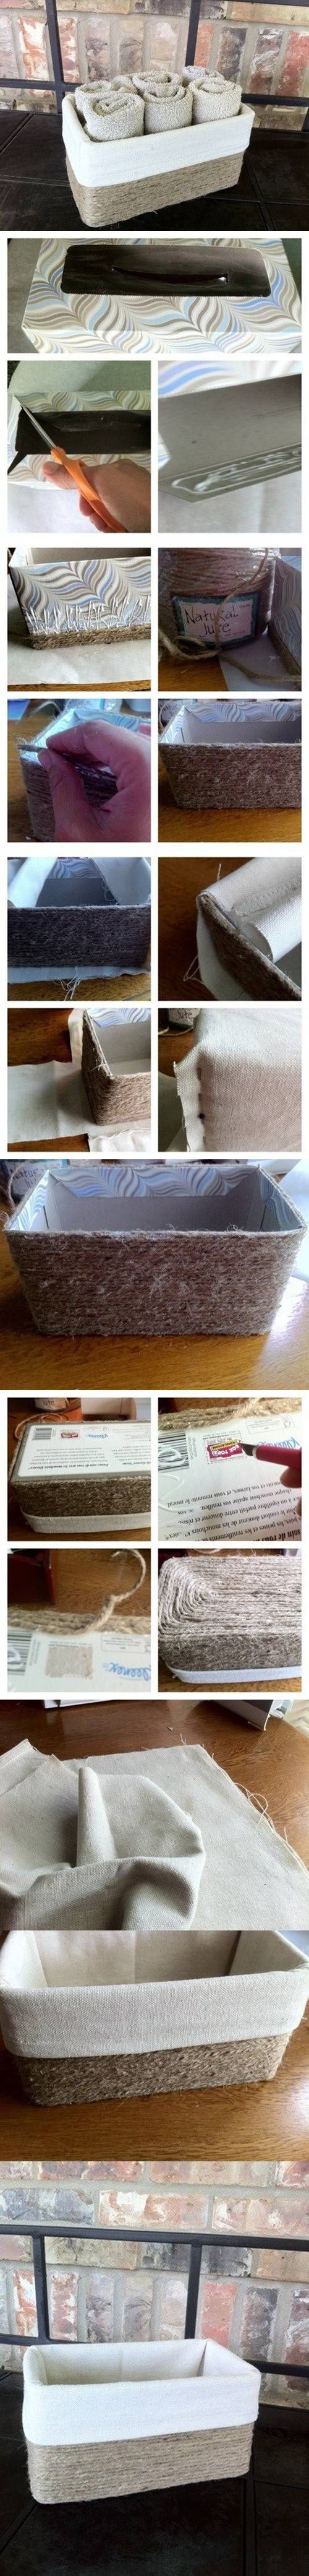 DIY Basket Pictures, Photos, and Images for Facebook, Tumblr, Pinterest, and Twitter